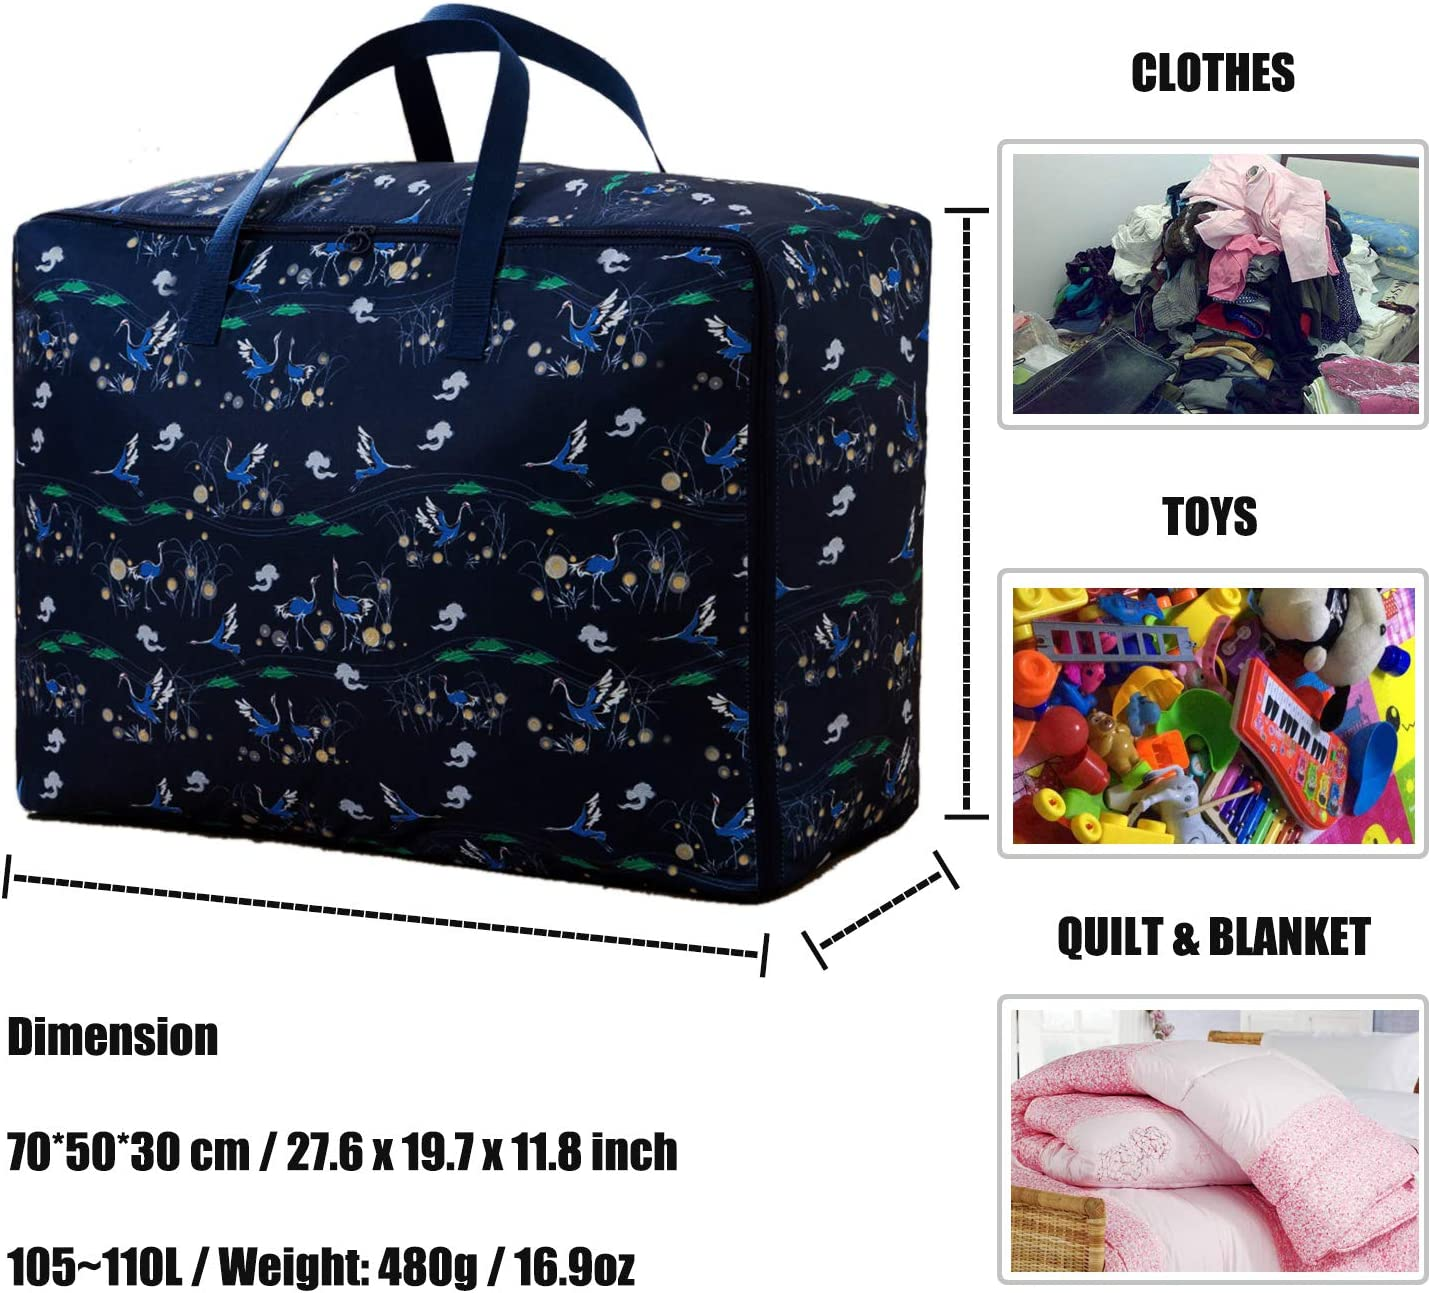 Duvets Ideal for Bedding Clothes or Moving Home Pillows KXF 110L Large Storage Bag with Zip Waterproof Sturdy 600D Oxford Organizer Bags Fabric Clothes Bag Under Bed Storage Travel Duffel Bag